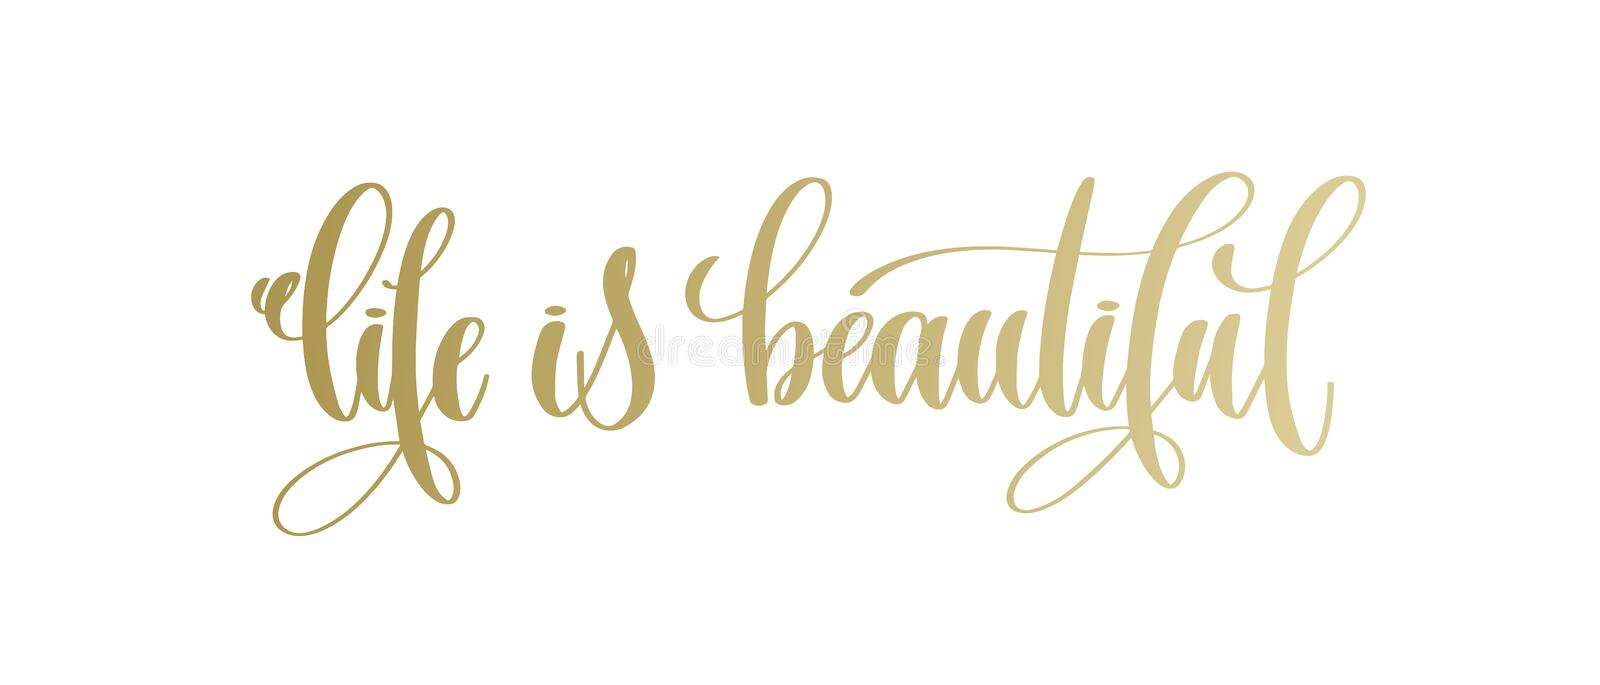 Life is beautiful - golden hand lettering inscription text royalty free illustration